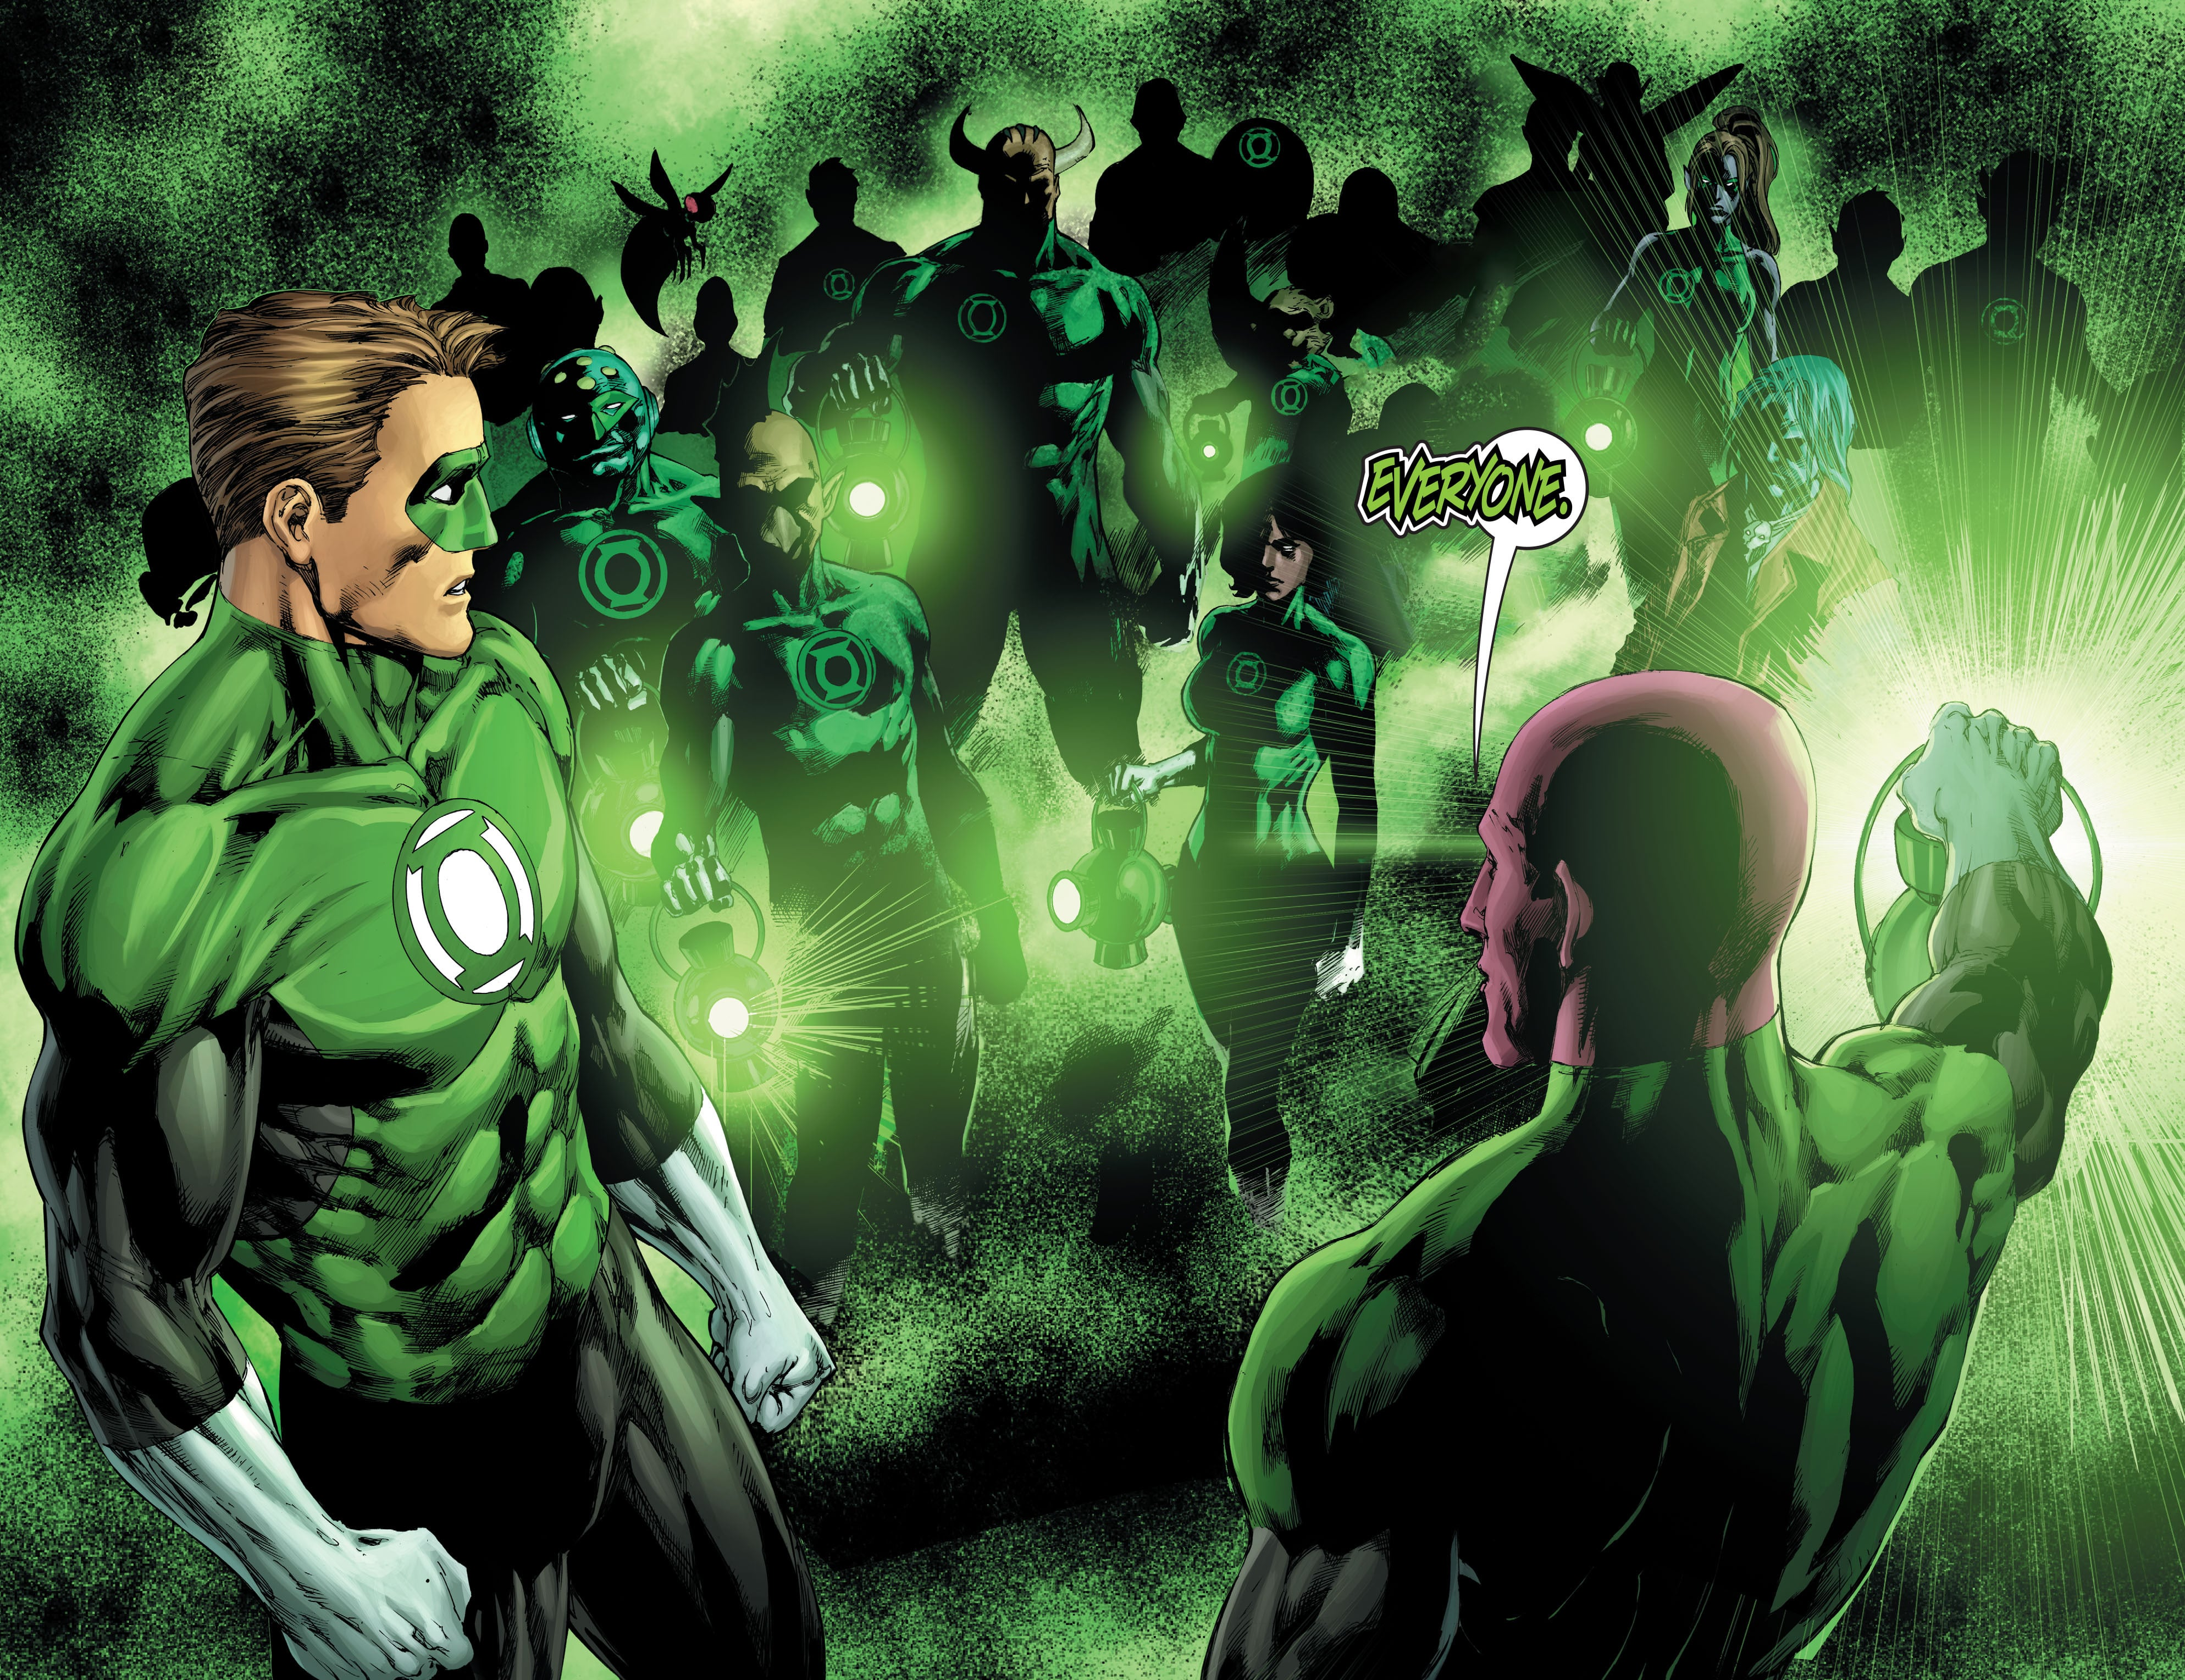 The Green Lantern #10 Teases Quest For The Cosmic Grail.